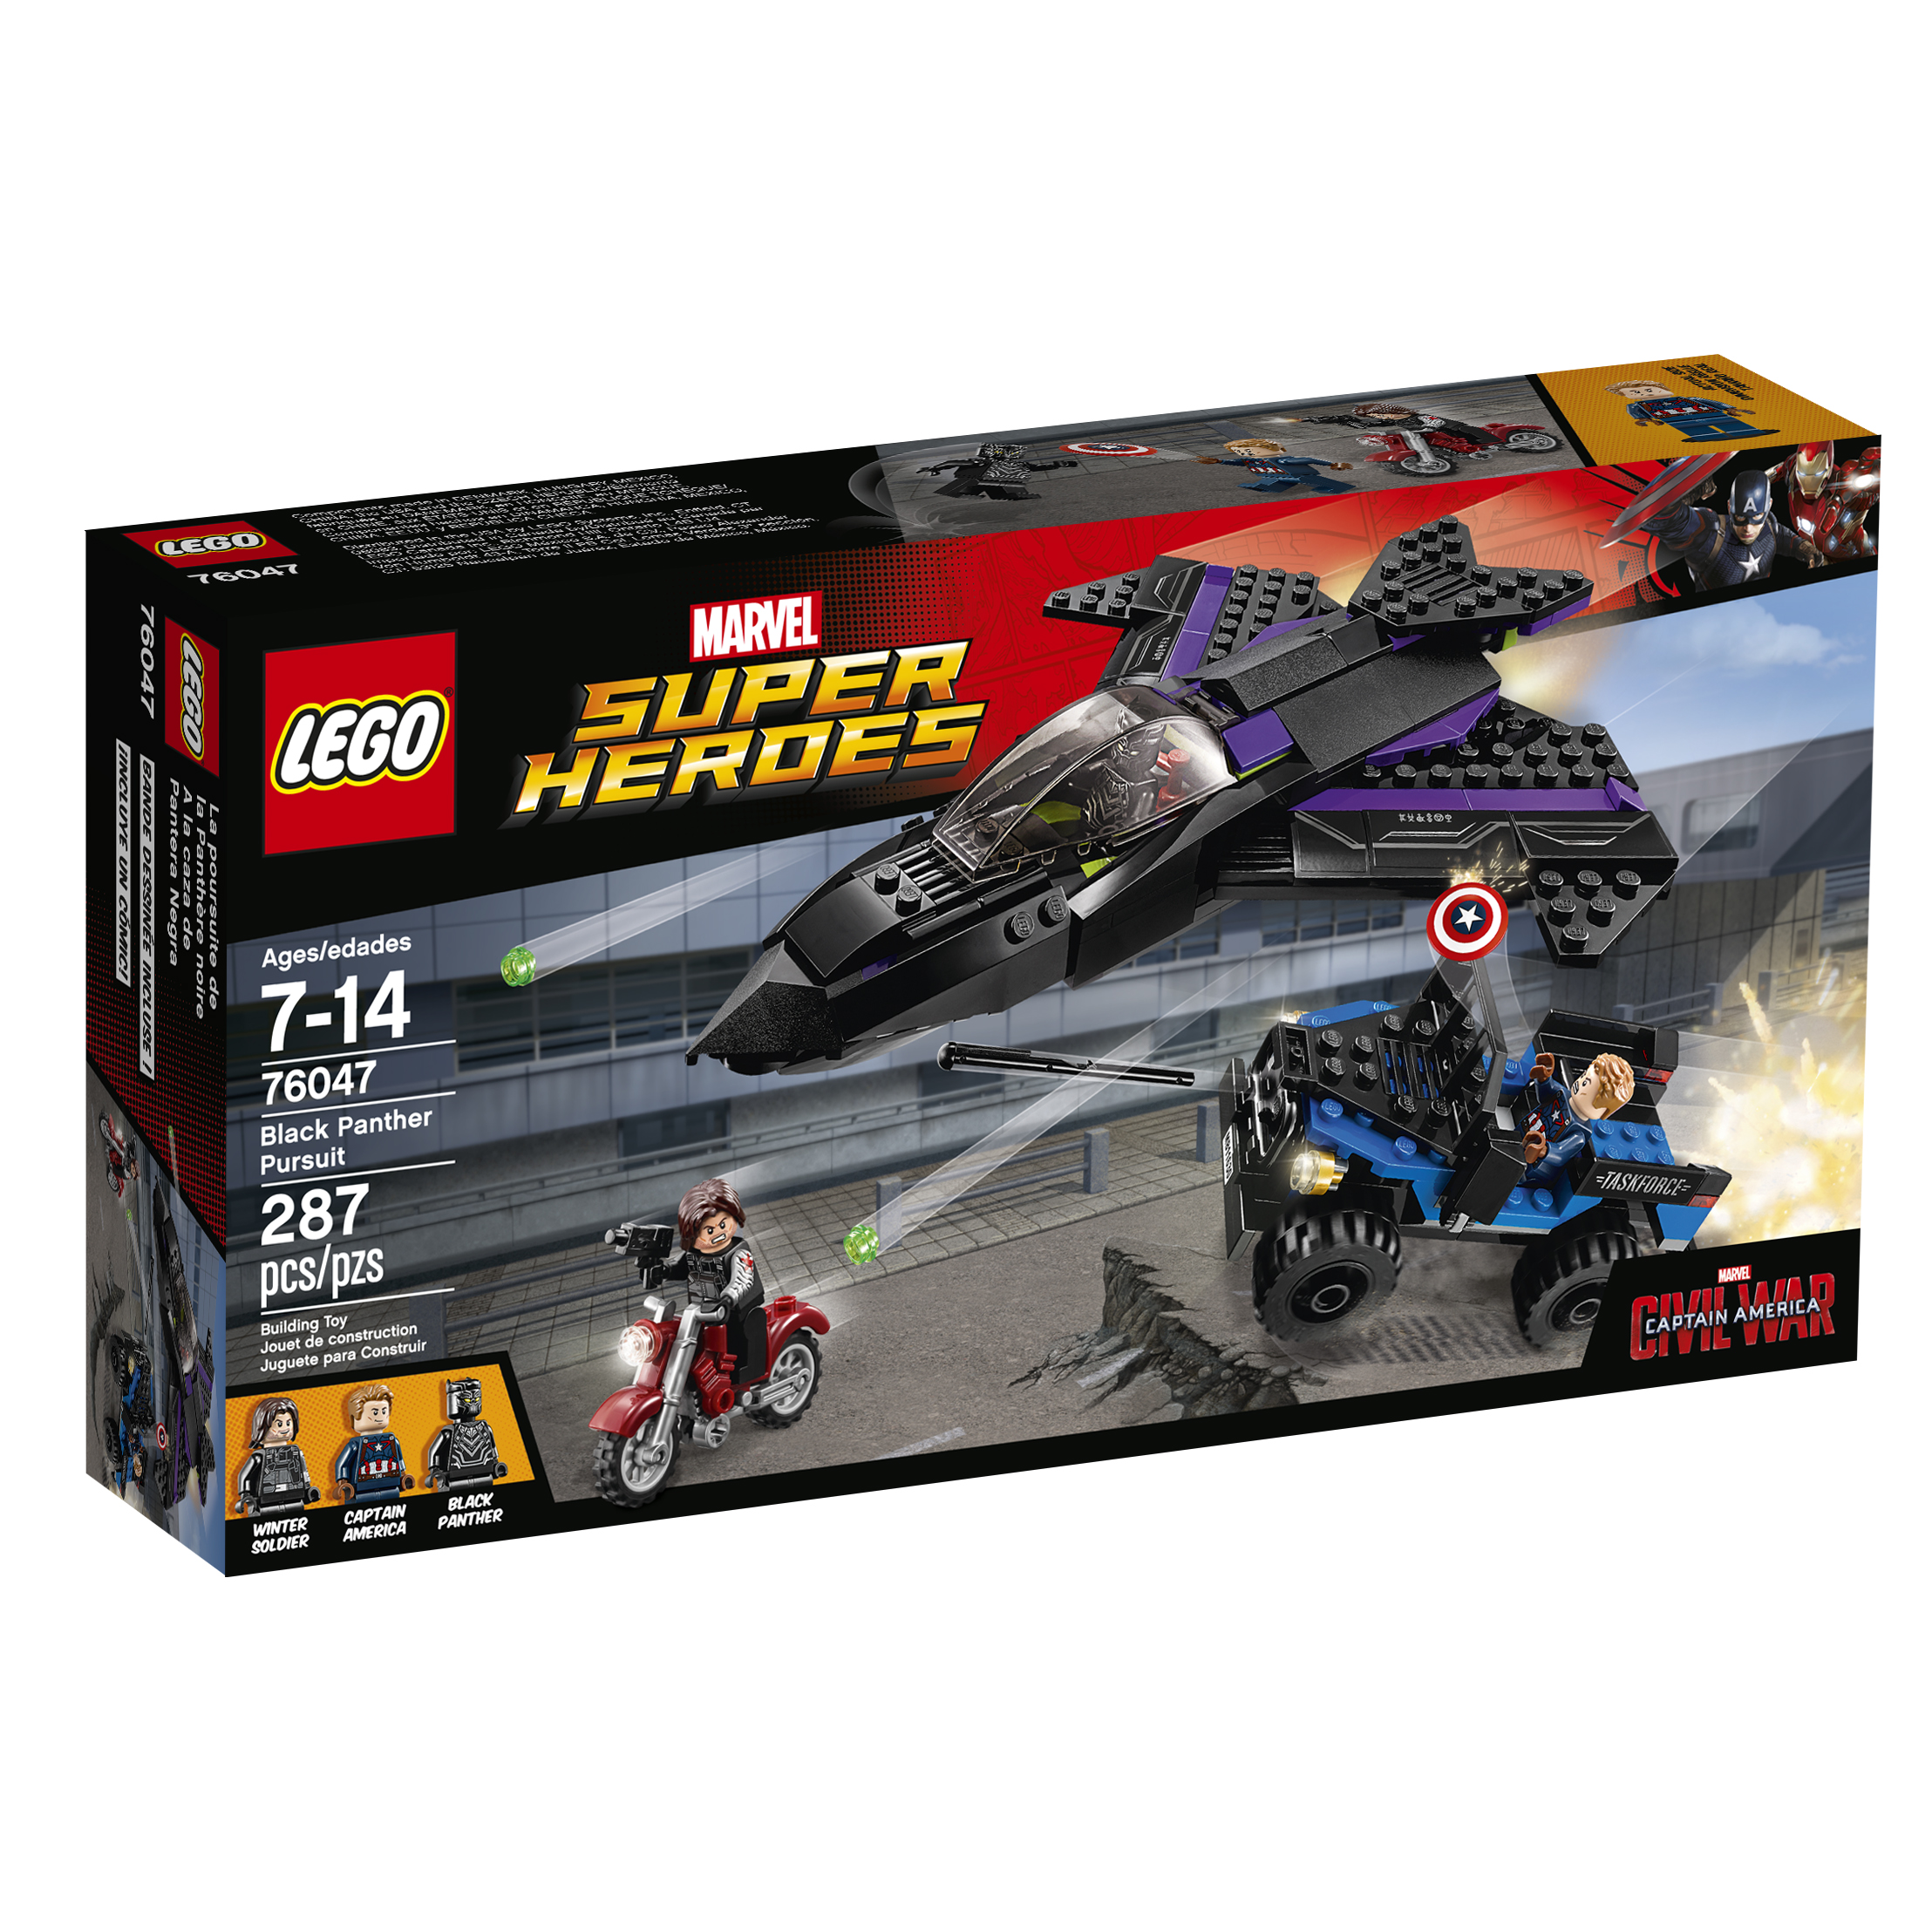 LEGO_Marvel Super Heroes Black Panther Pursuit_March 2016